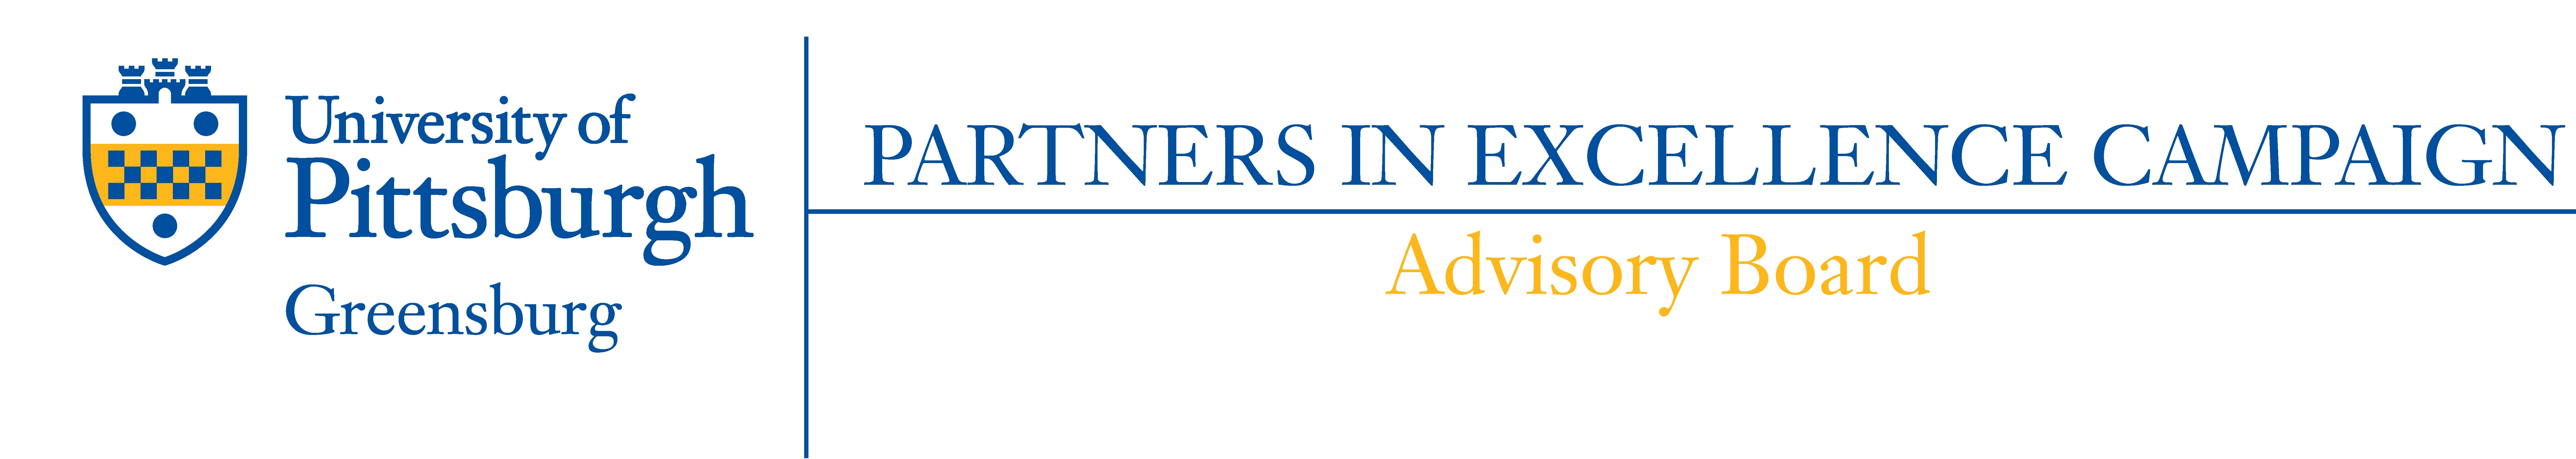 Partners in Excellence campaign logo